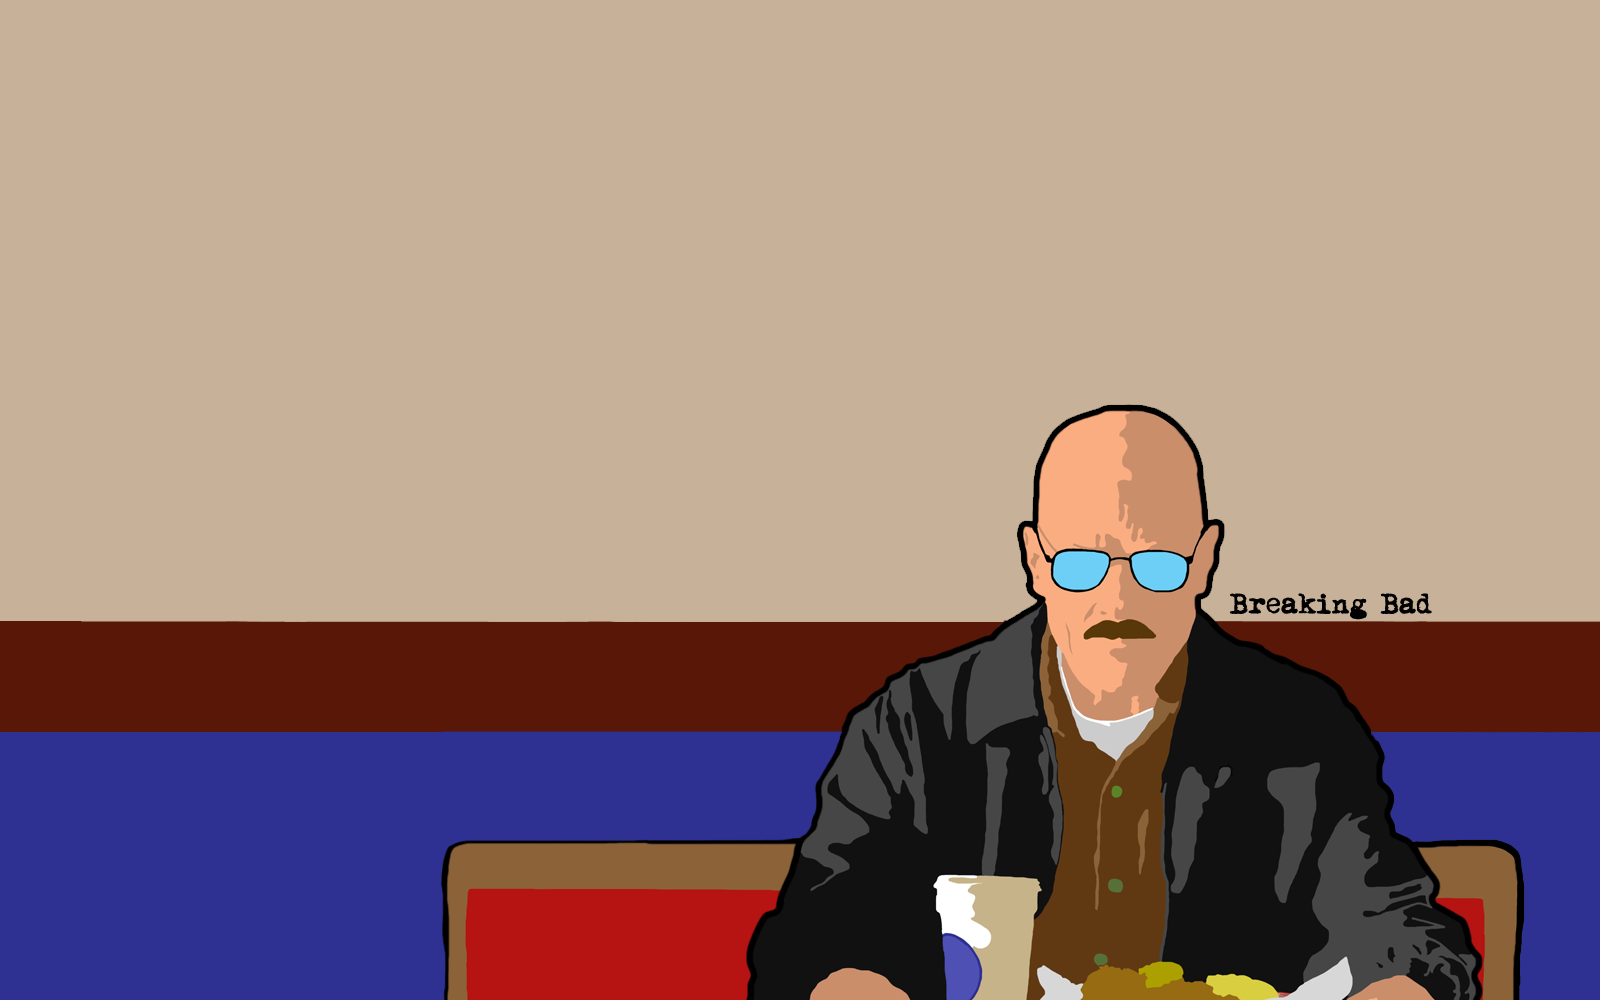 Breaking Bad Wallpaper and Background | 1600x1000 | ID:294070